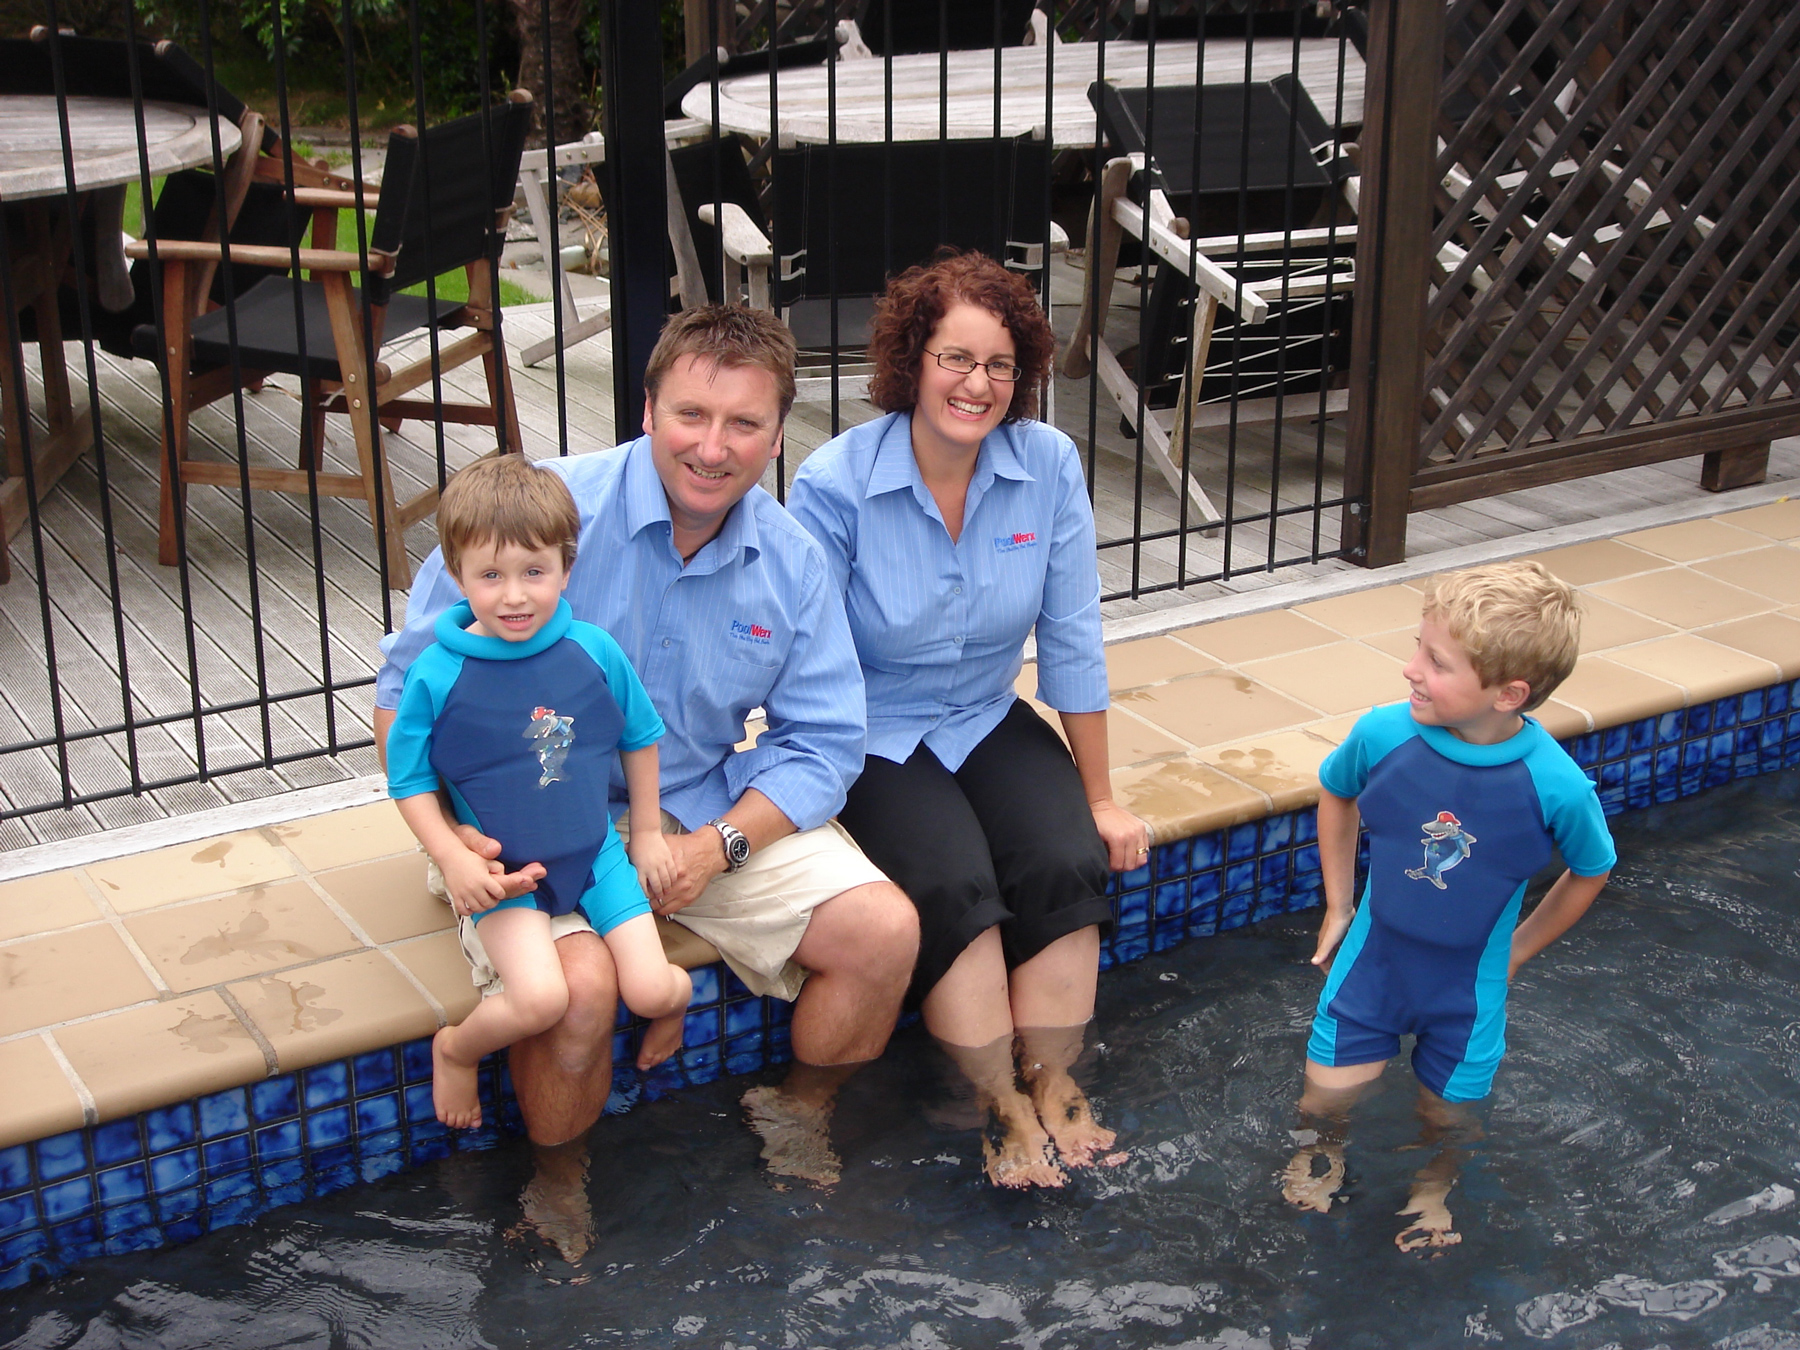 Home Services - Best Franchisee: David and Prue Kimber, Poolwerx Hamilton, with their family